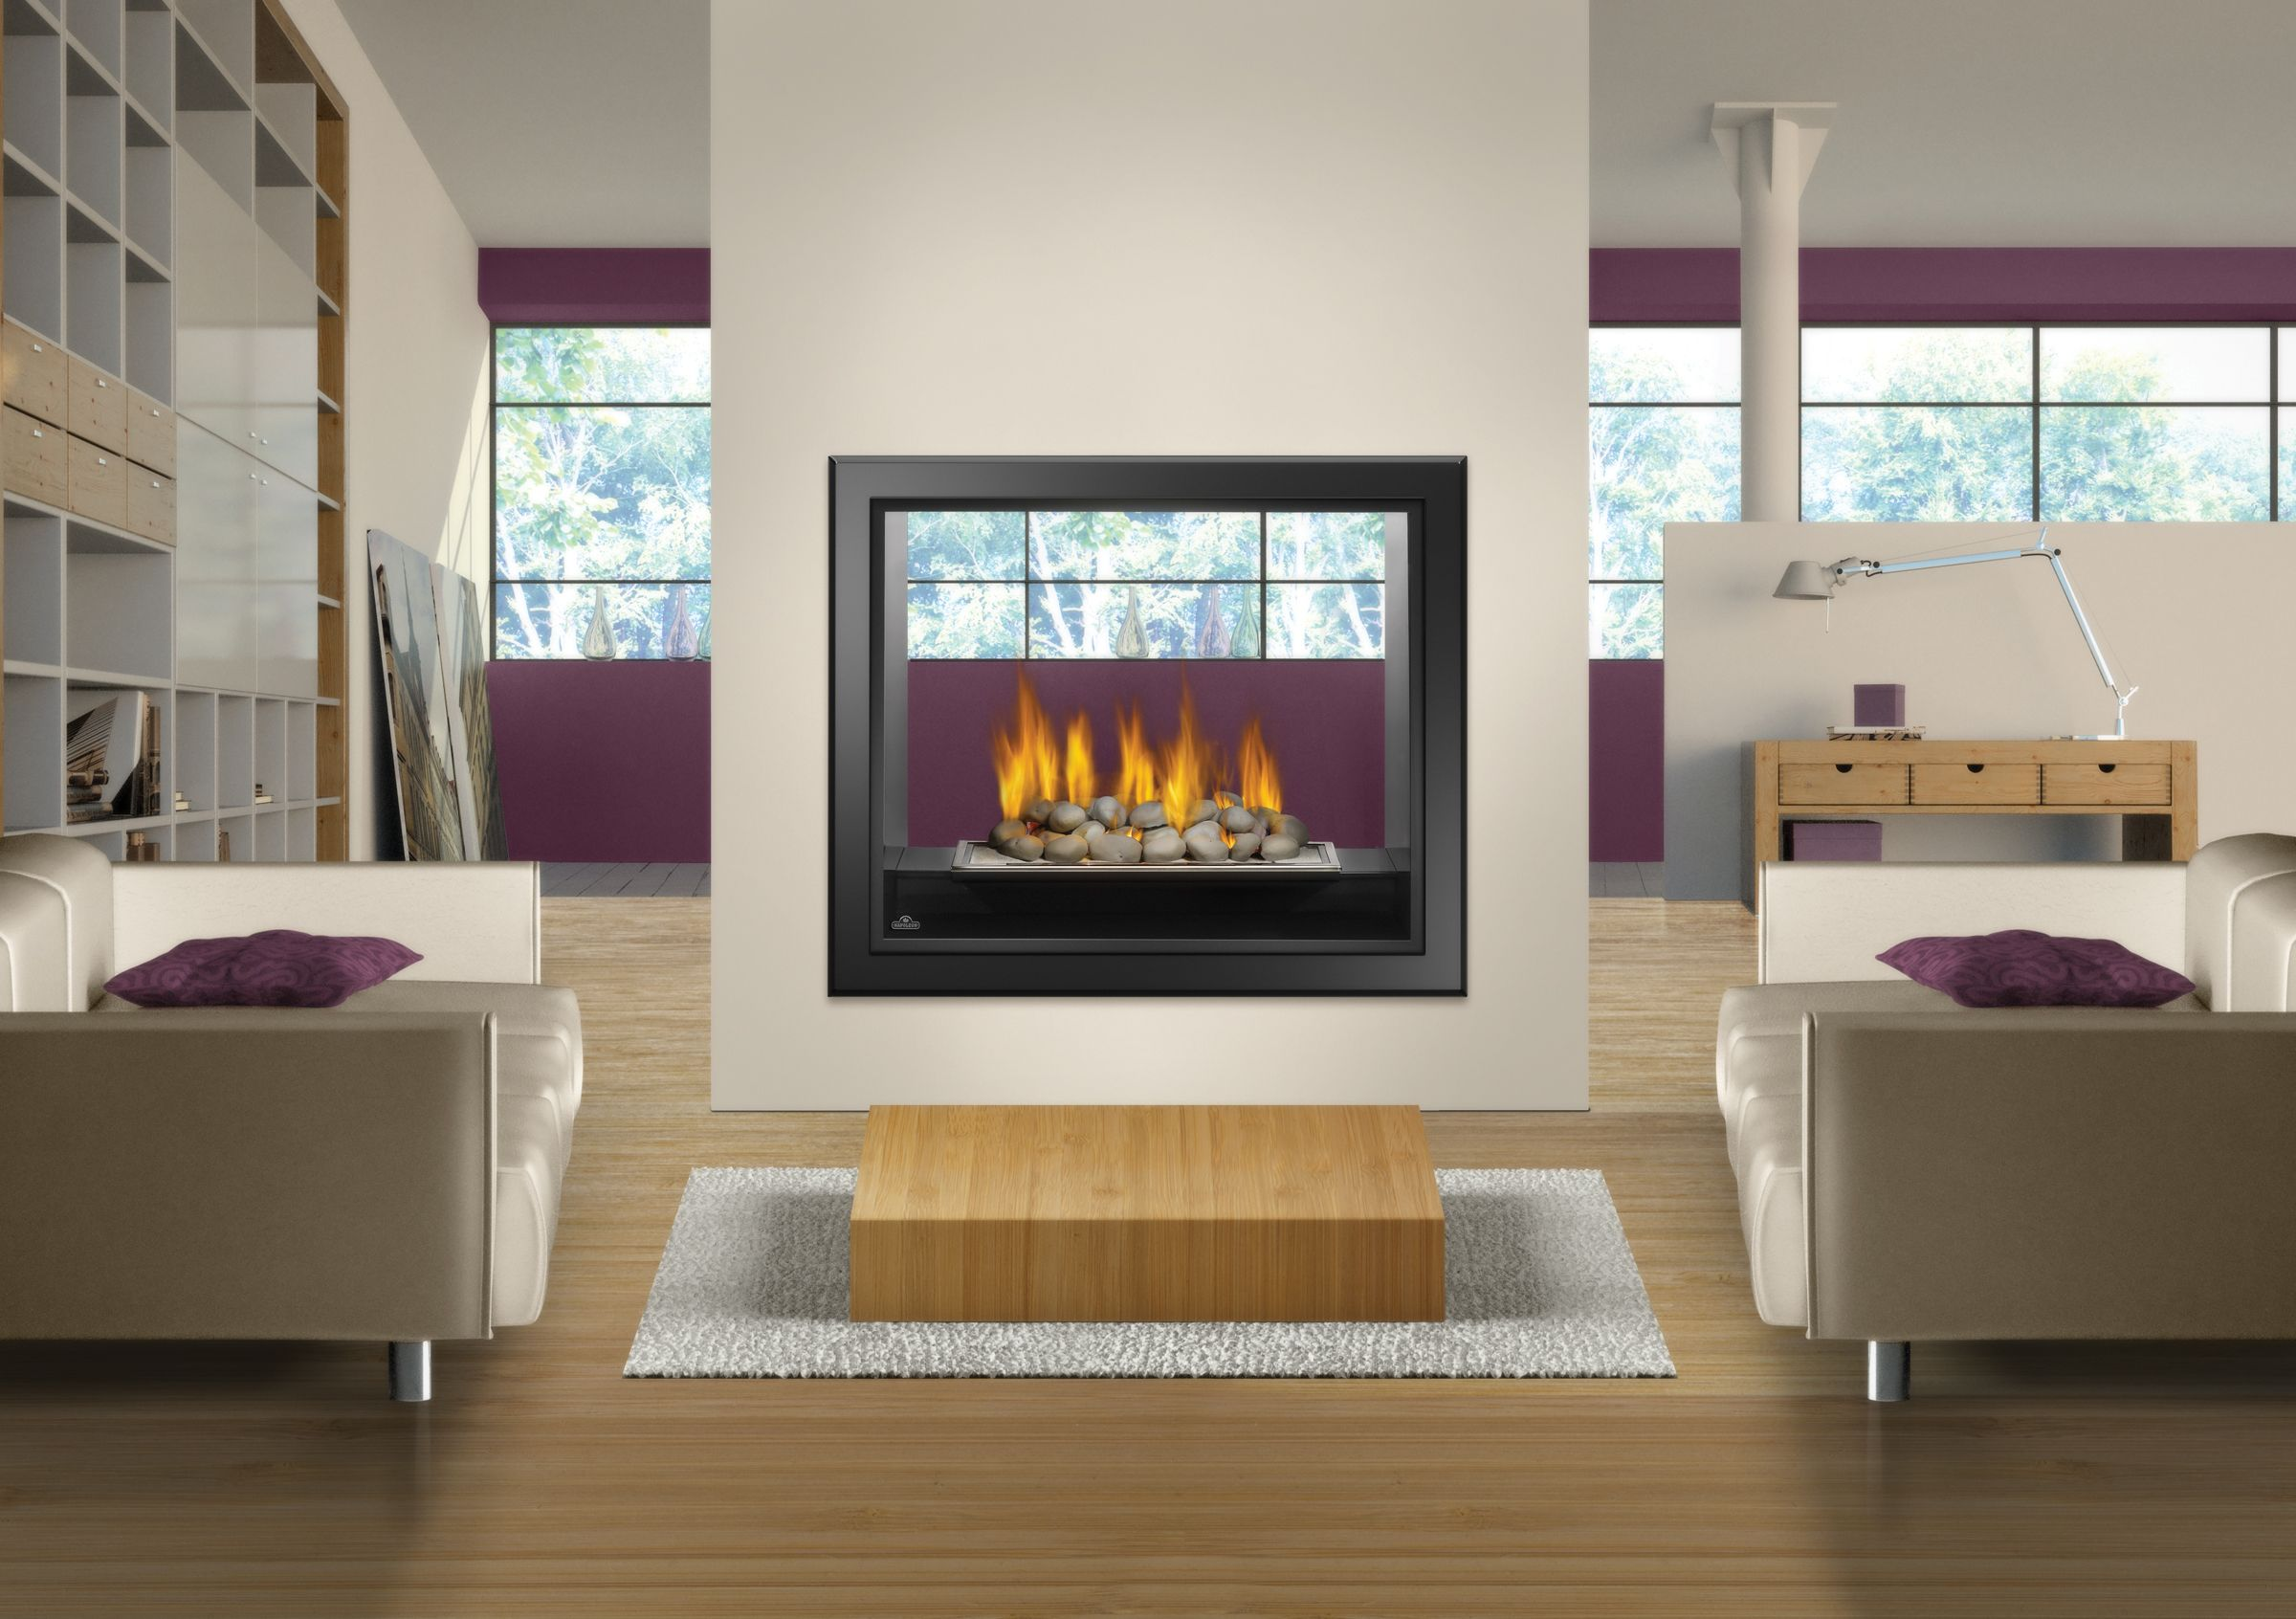 Napoleon hd81 large see thru fireplace with great heat for Open sided fireplace